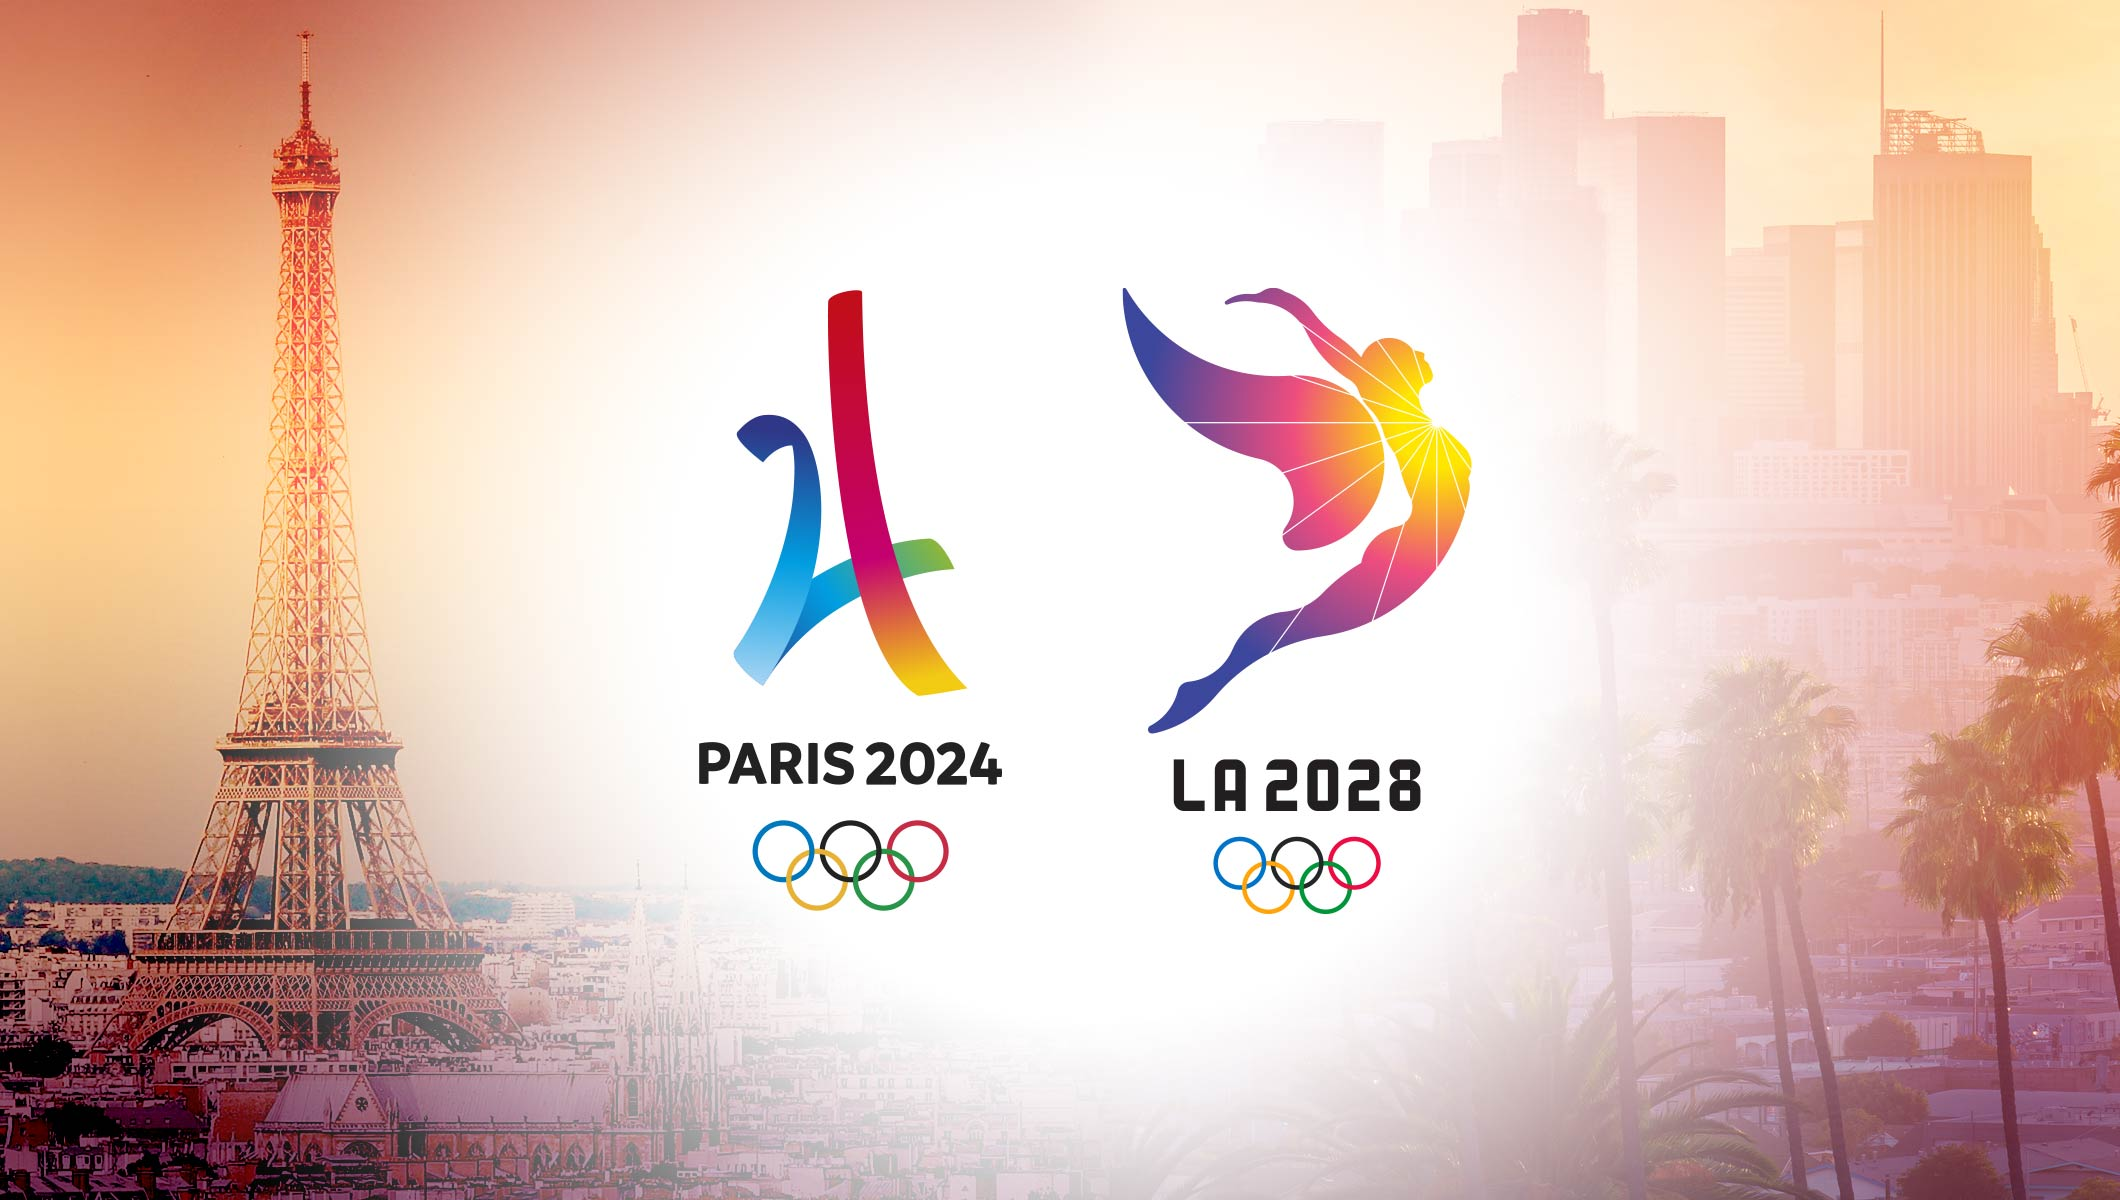 ... of an agreement reached in July, the International Olympic Committee  (IOC) has awarded the 2024 Olympic Games to Paris, France, and the 2028  Games to ...